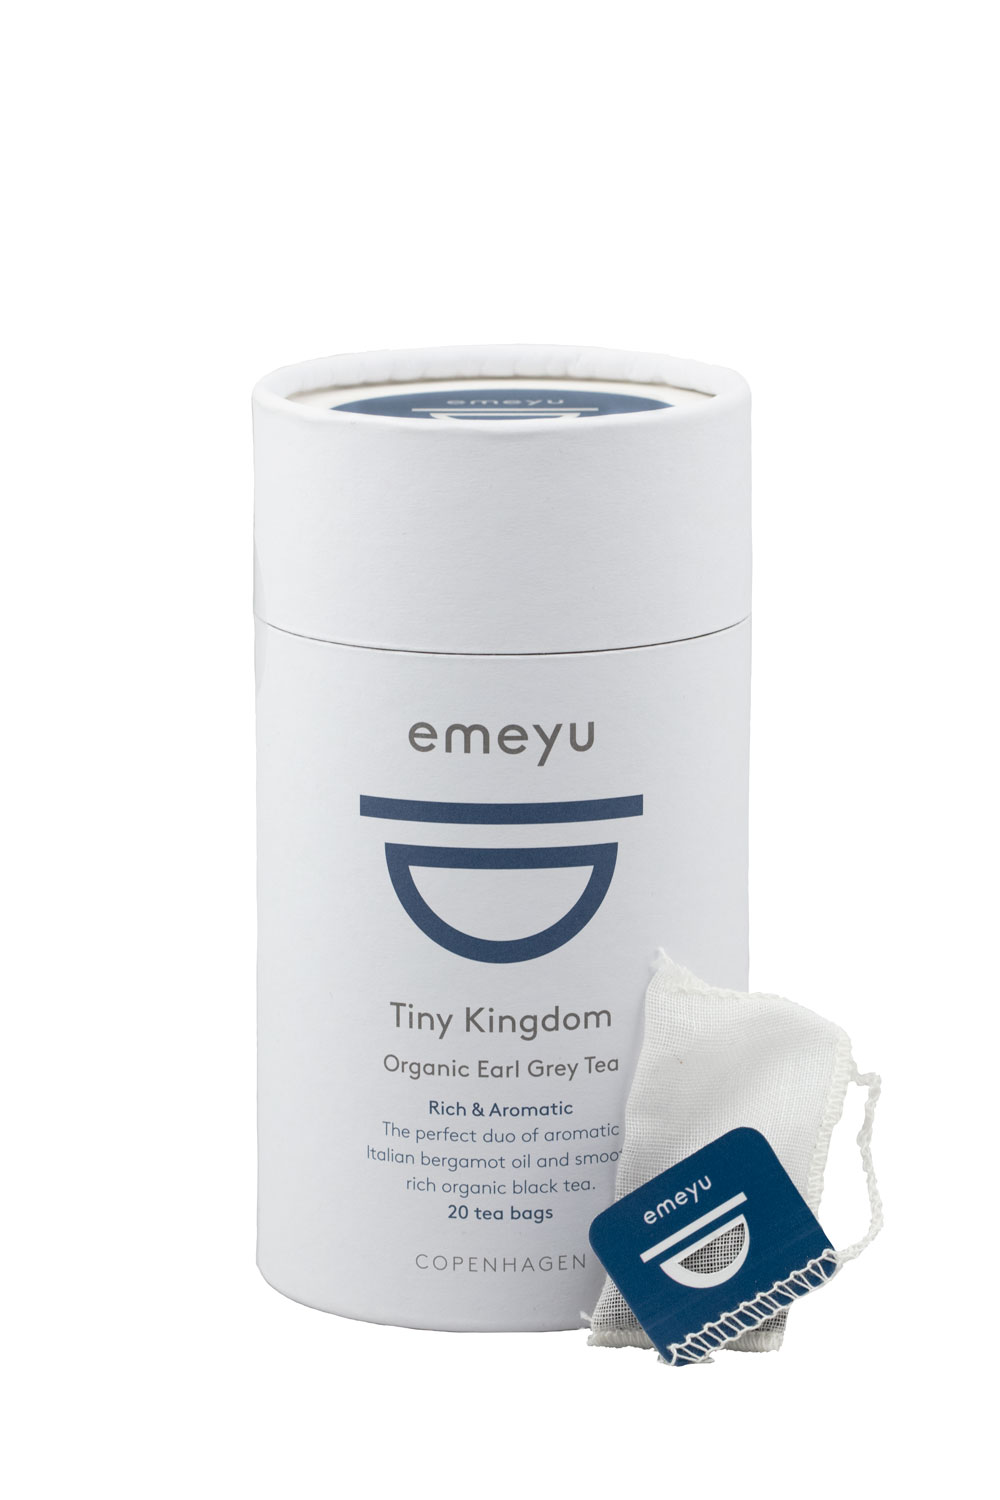 Tiny Kingdom organic Earl Grey tea in cotton and microplastic-free teabags and sustainable packaging.